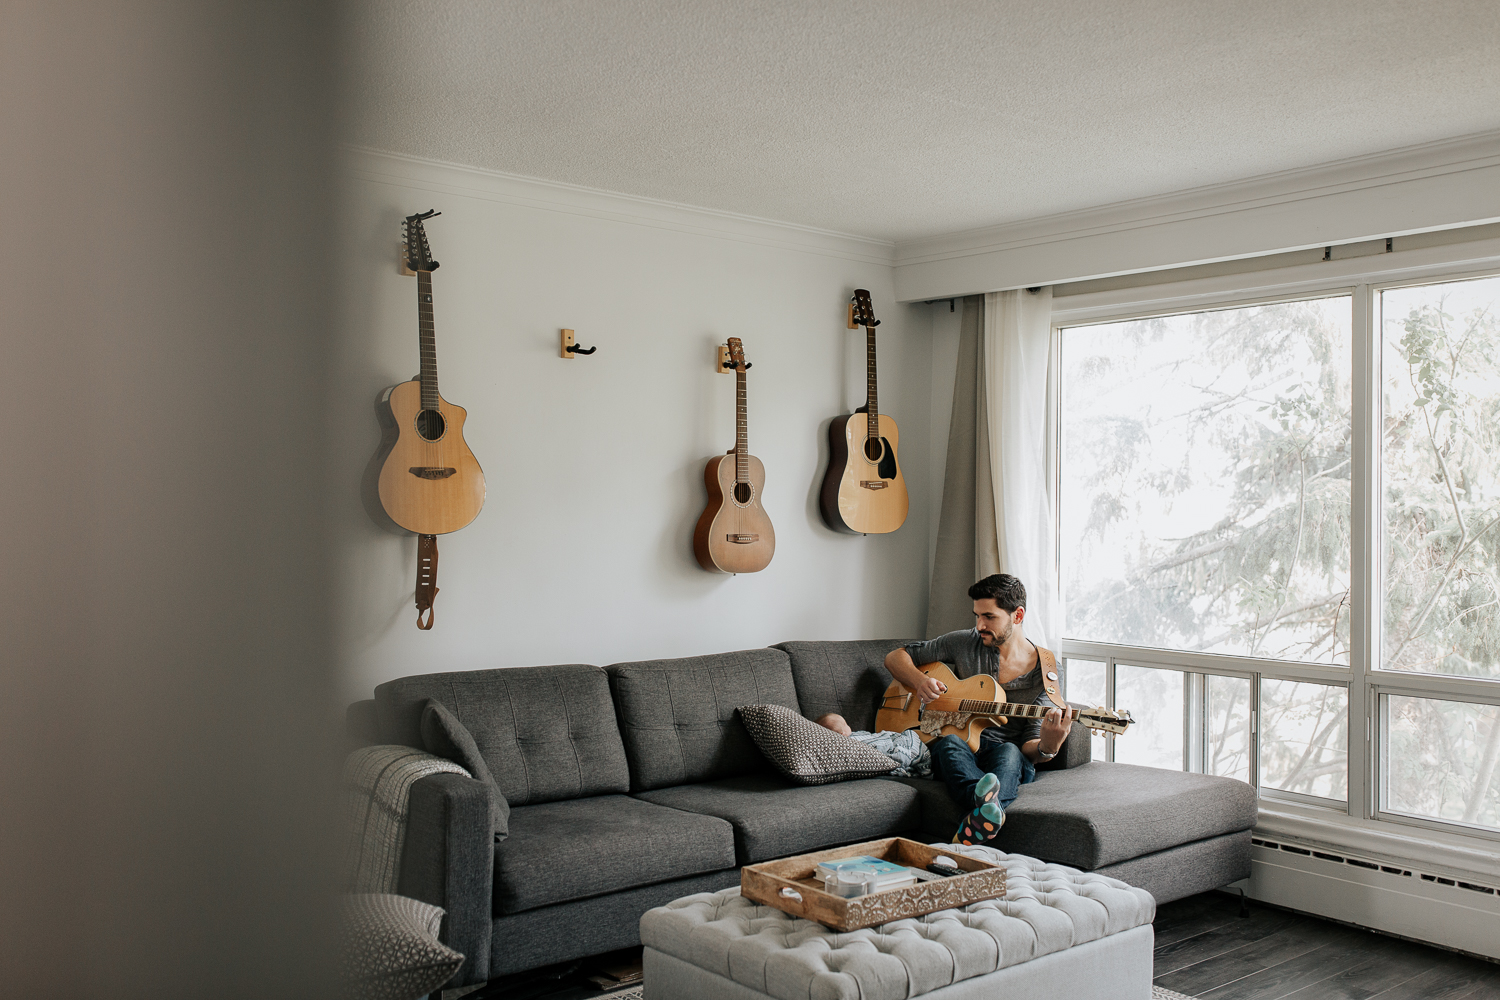 new dad sitting on living room couch playing guitar and singing to 2 week old baby boy lying against cushions - Newmarket In-HomePhotography